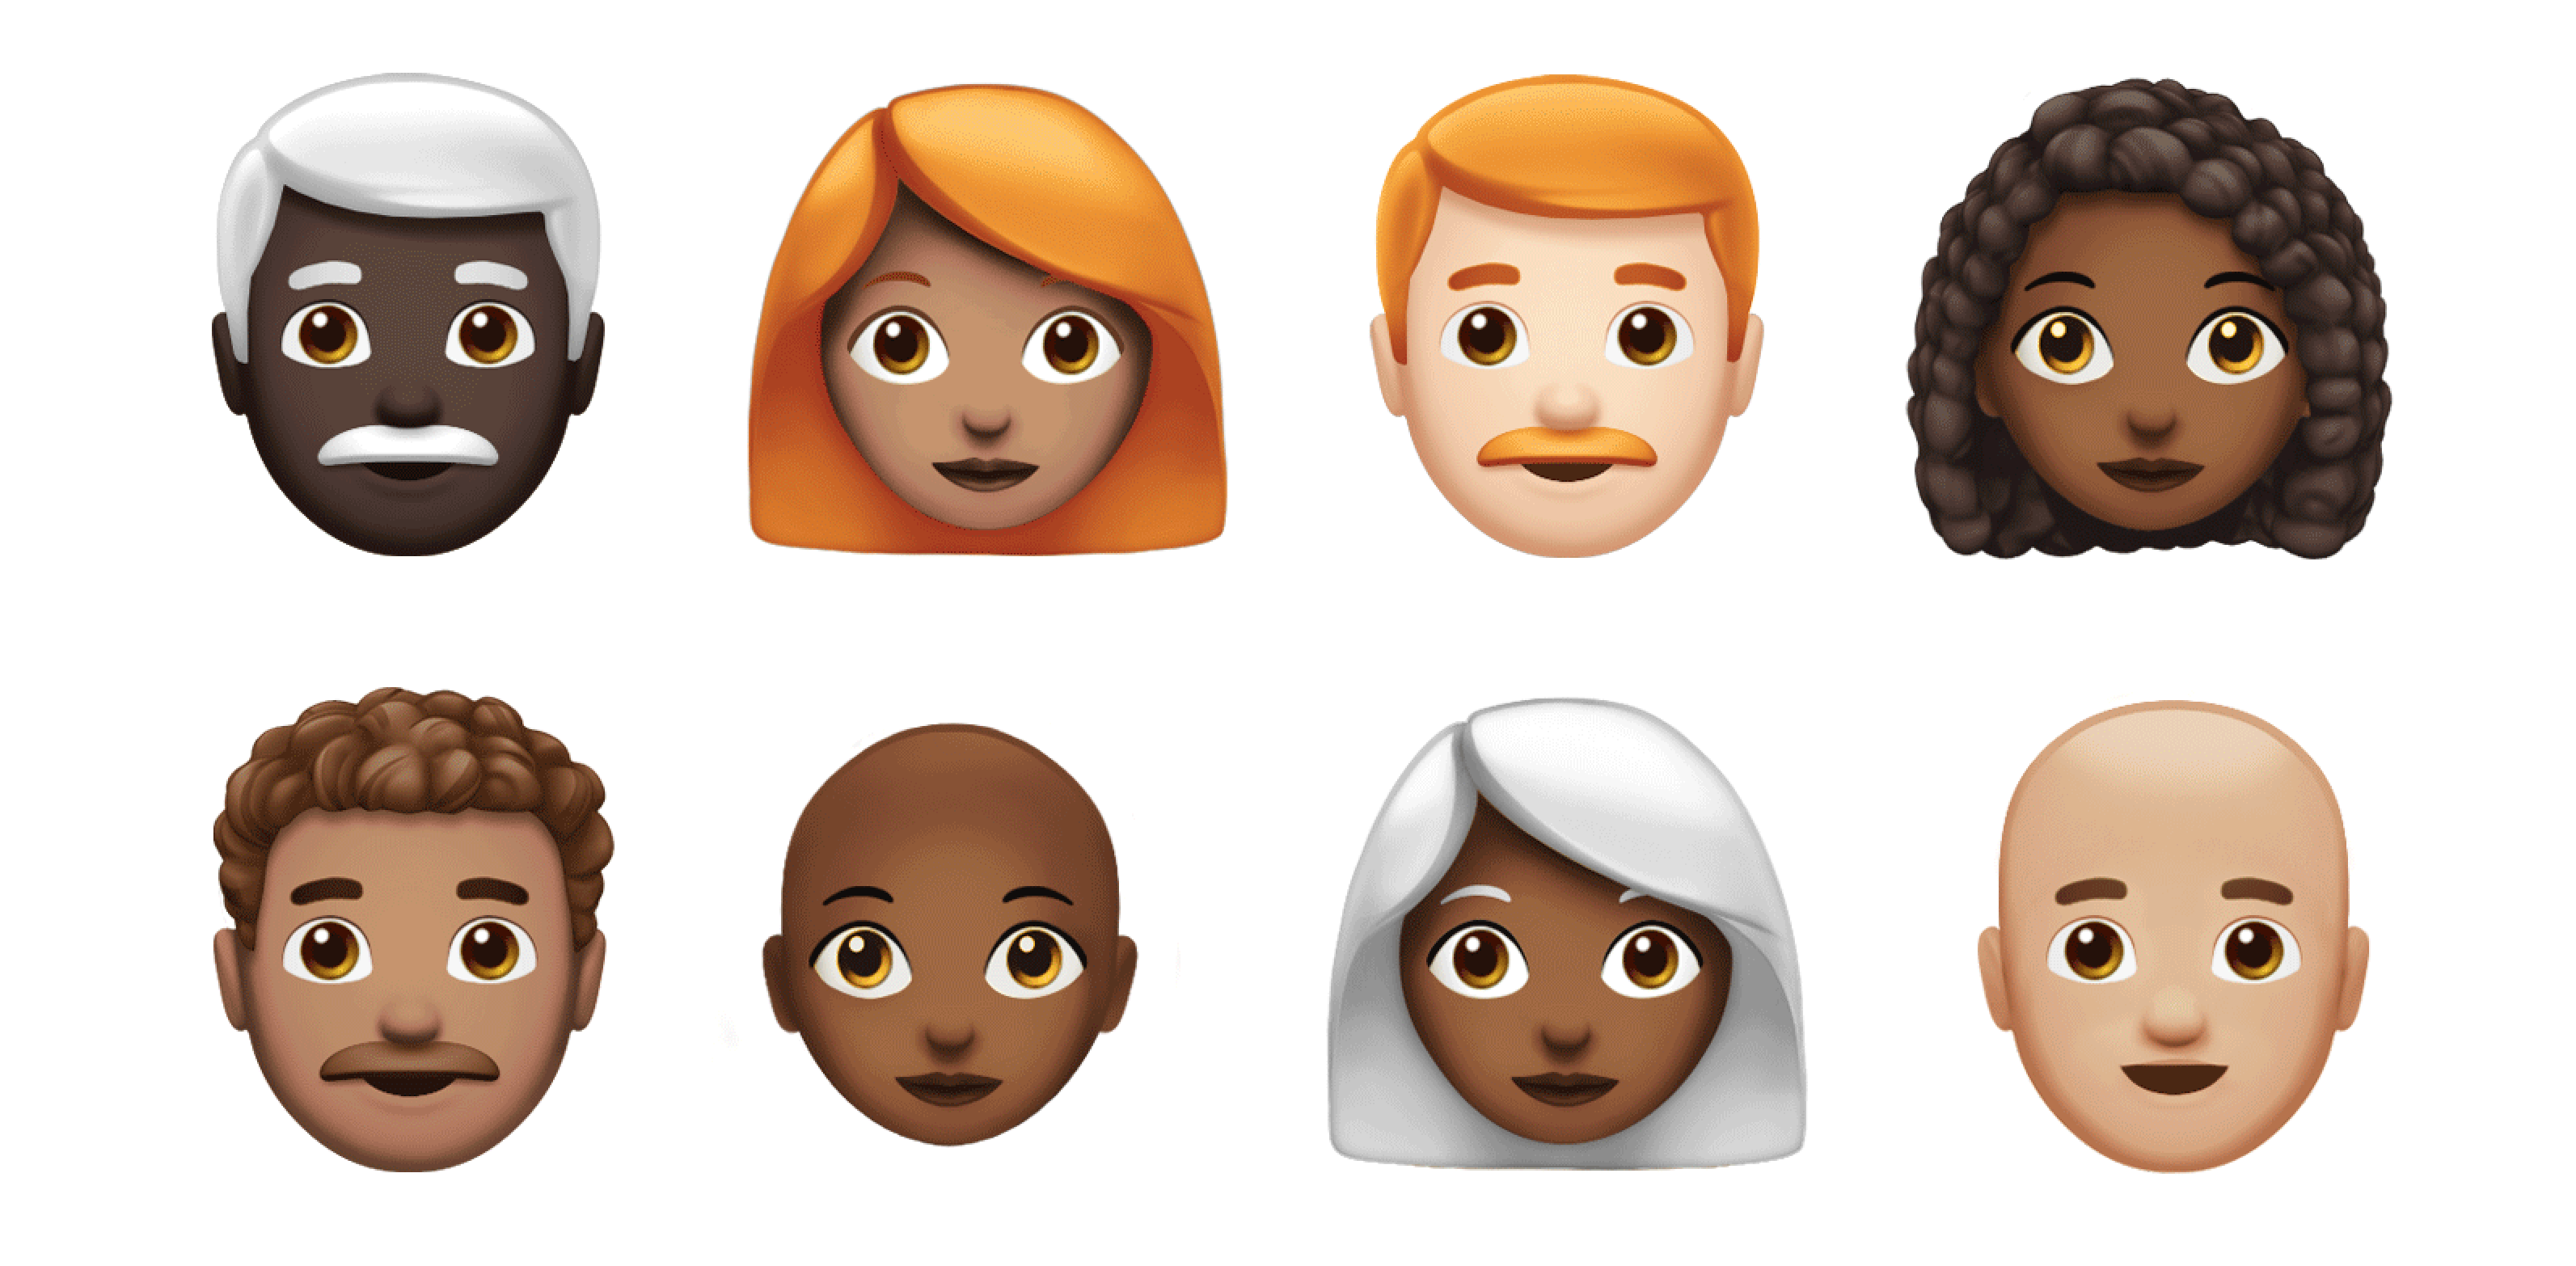 apple releases new emoji for ios 12 see apple s new redhead emojis